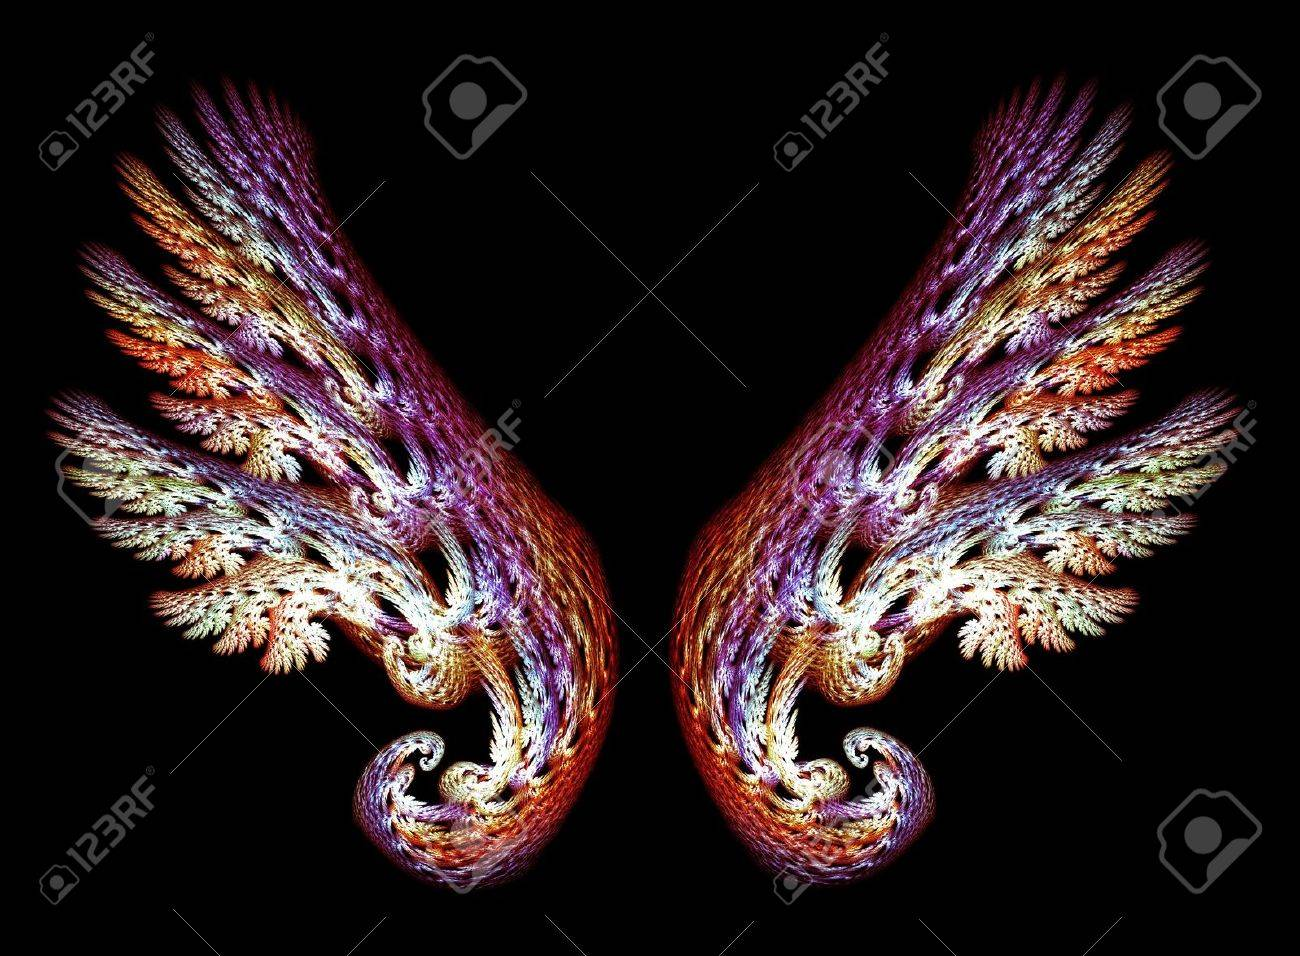 Two Angel Wings in purple and gold tones over black background Stock Photo - 5150105